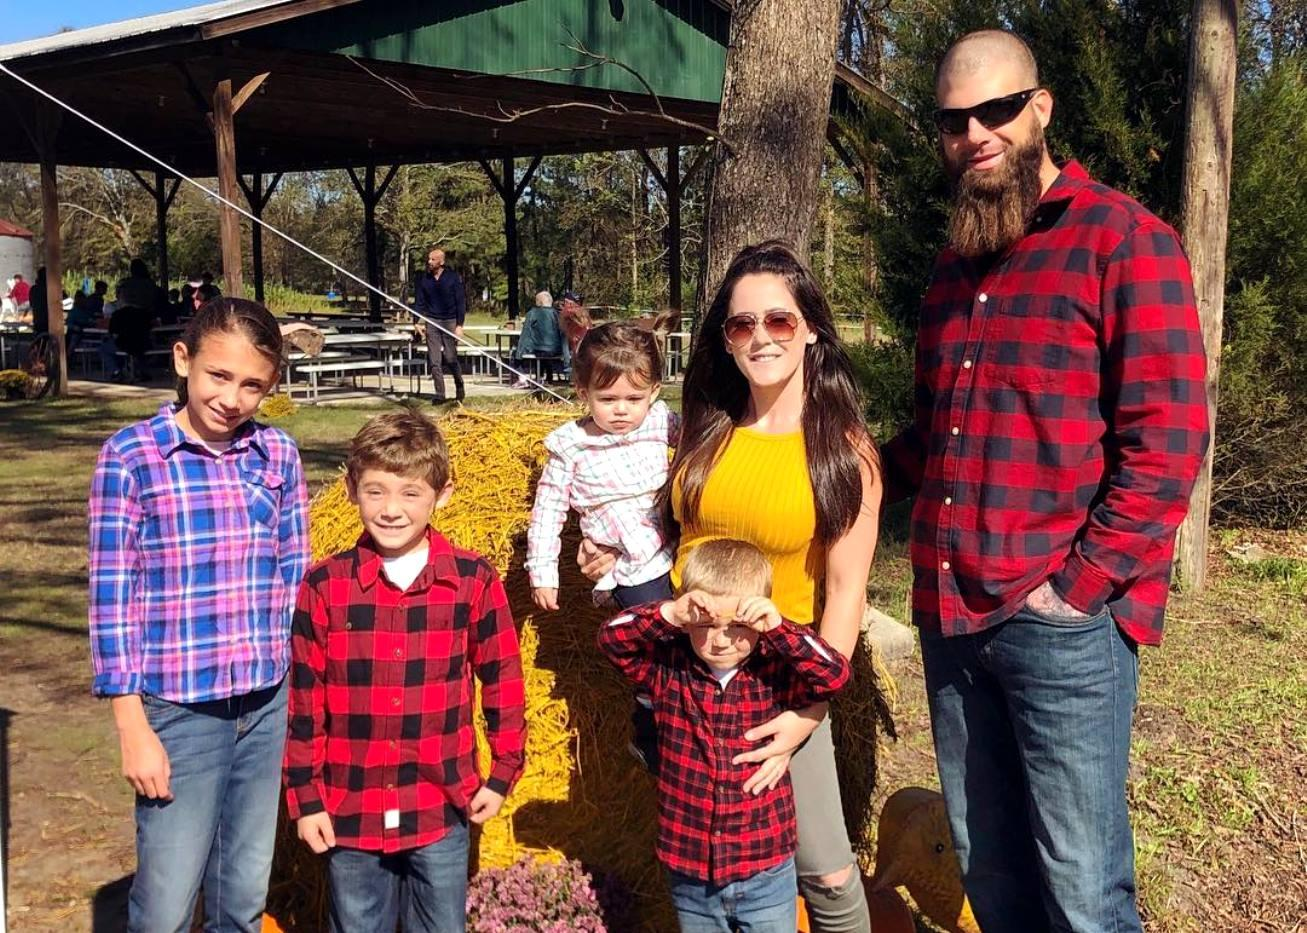 Jenelle Evans Quits Twitter Because 'Everyone Hates' Her -- Gets Support From Some Fans And Slammed By Others